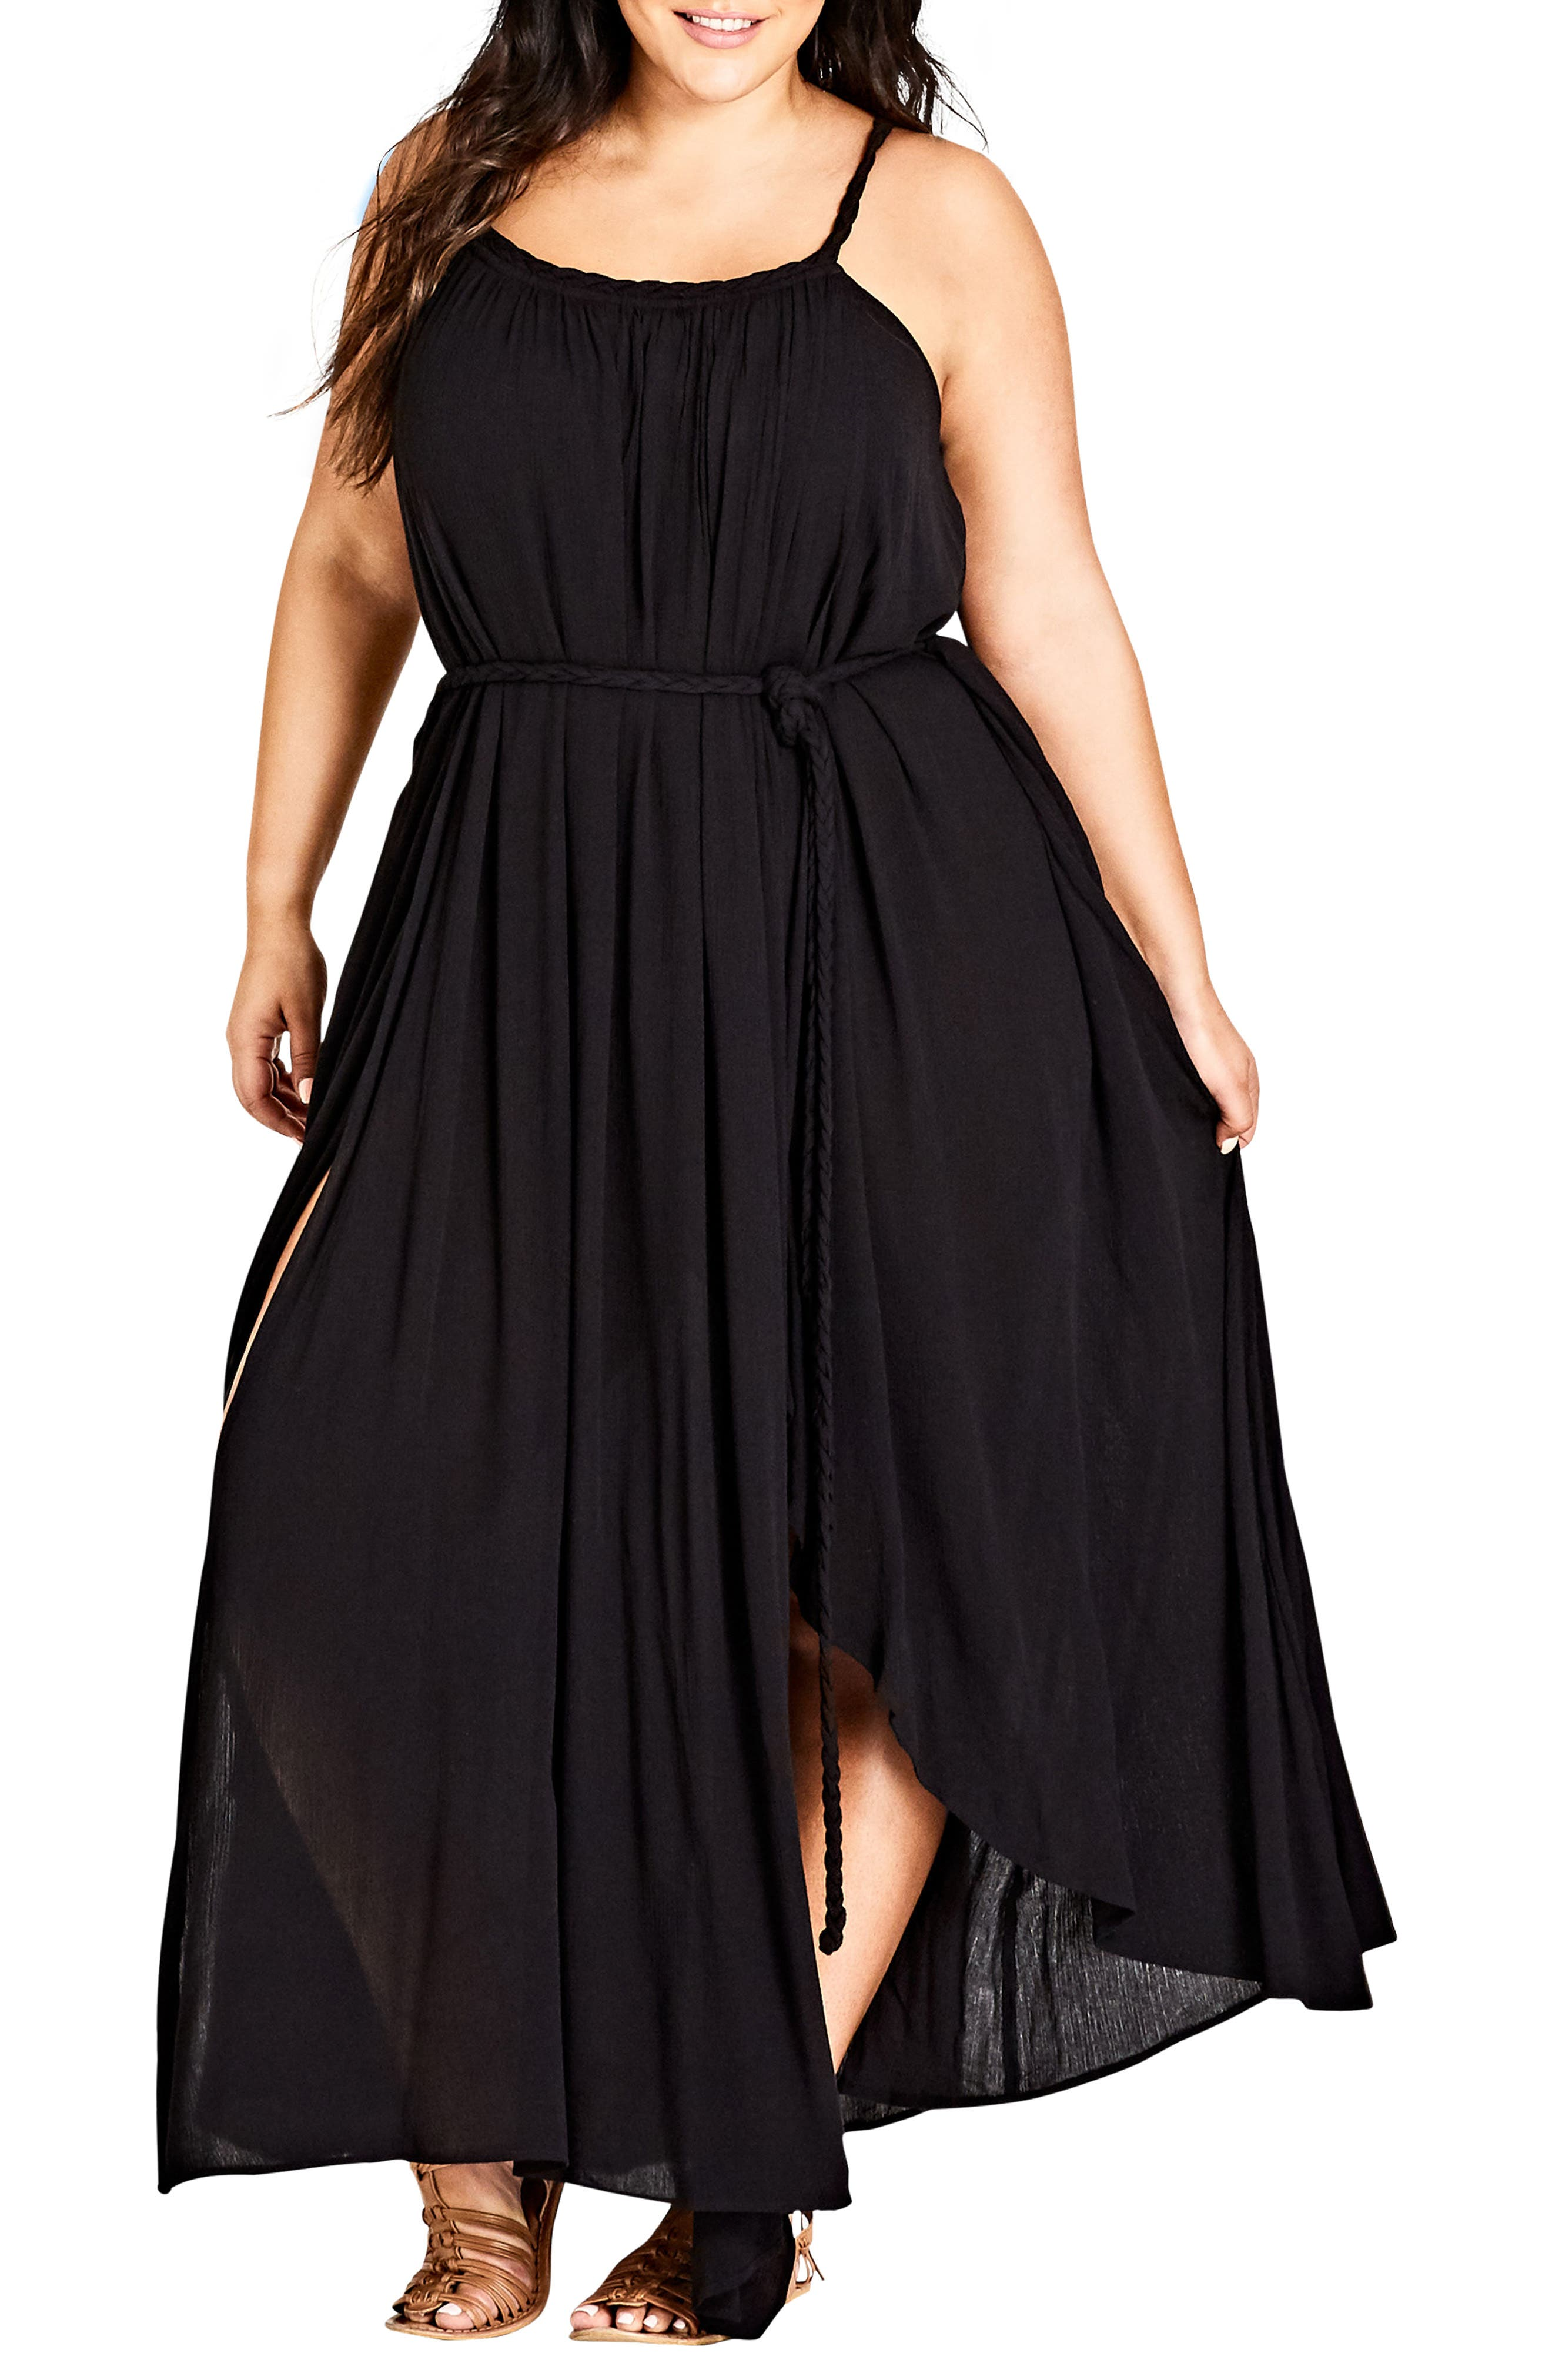 Alternate Image 1 Selected - City Chic Happy Feels Maxi Dress (Plus Size)